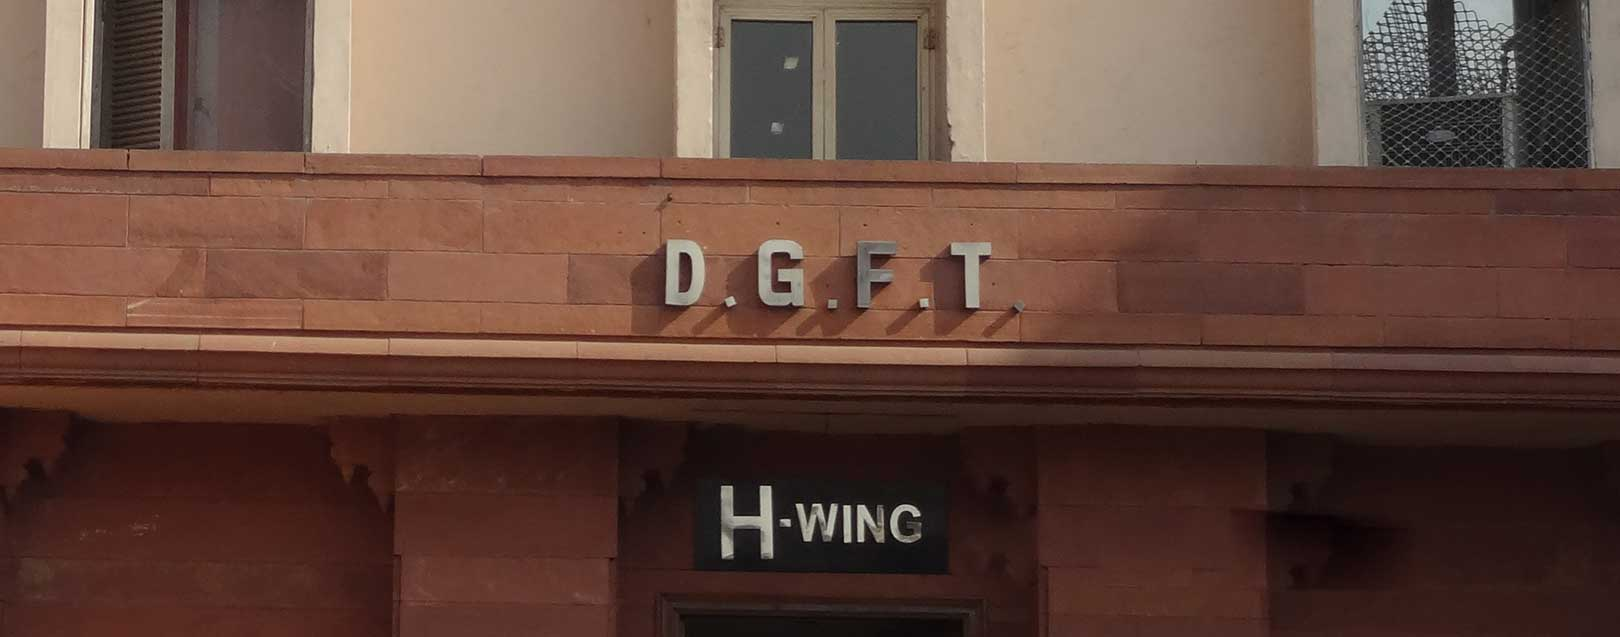 Refiners to submit valid license from BIS for gold dore import authorisation: DGFT